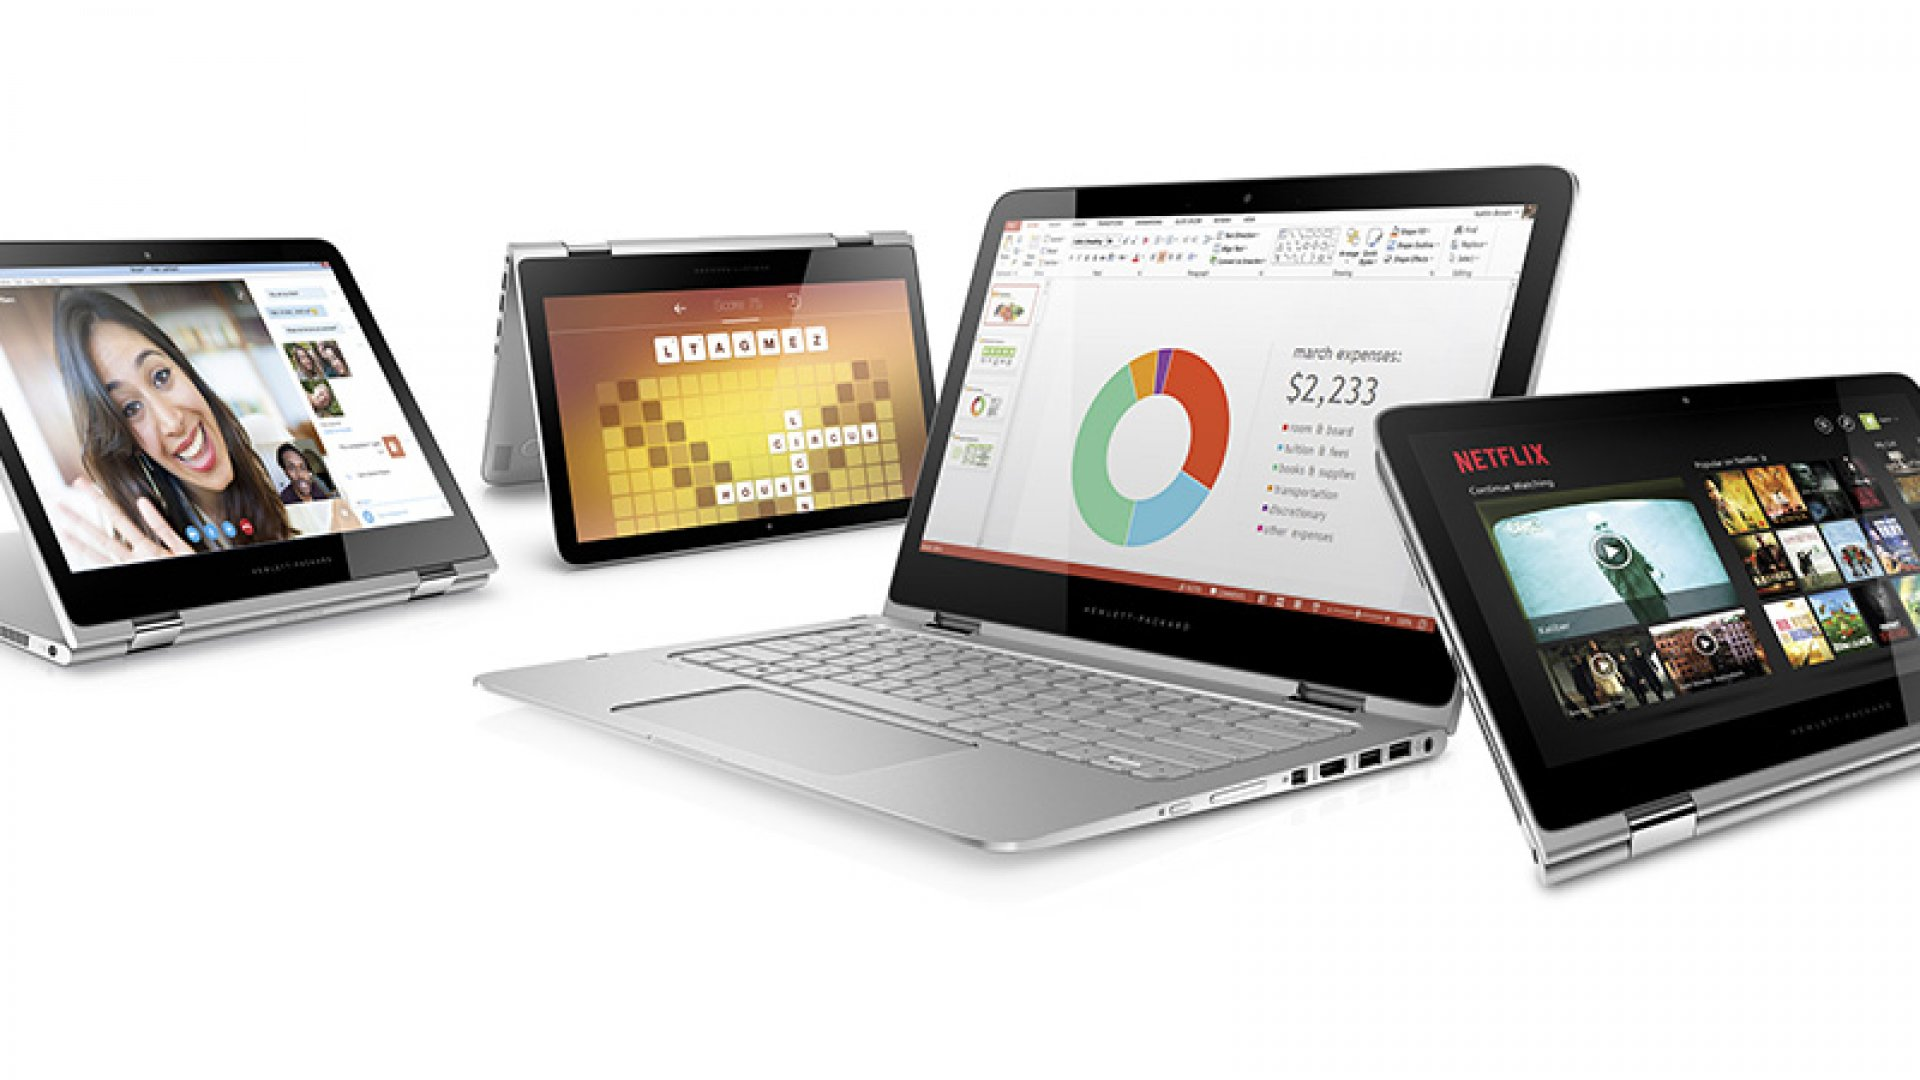 Reviewed: The Best Laptop HP Has Ever Made